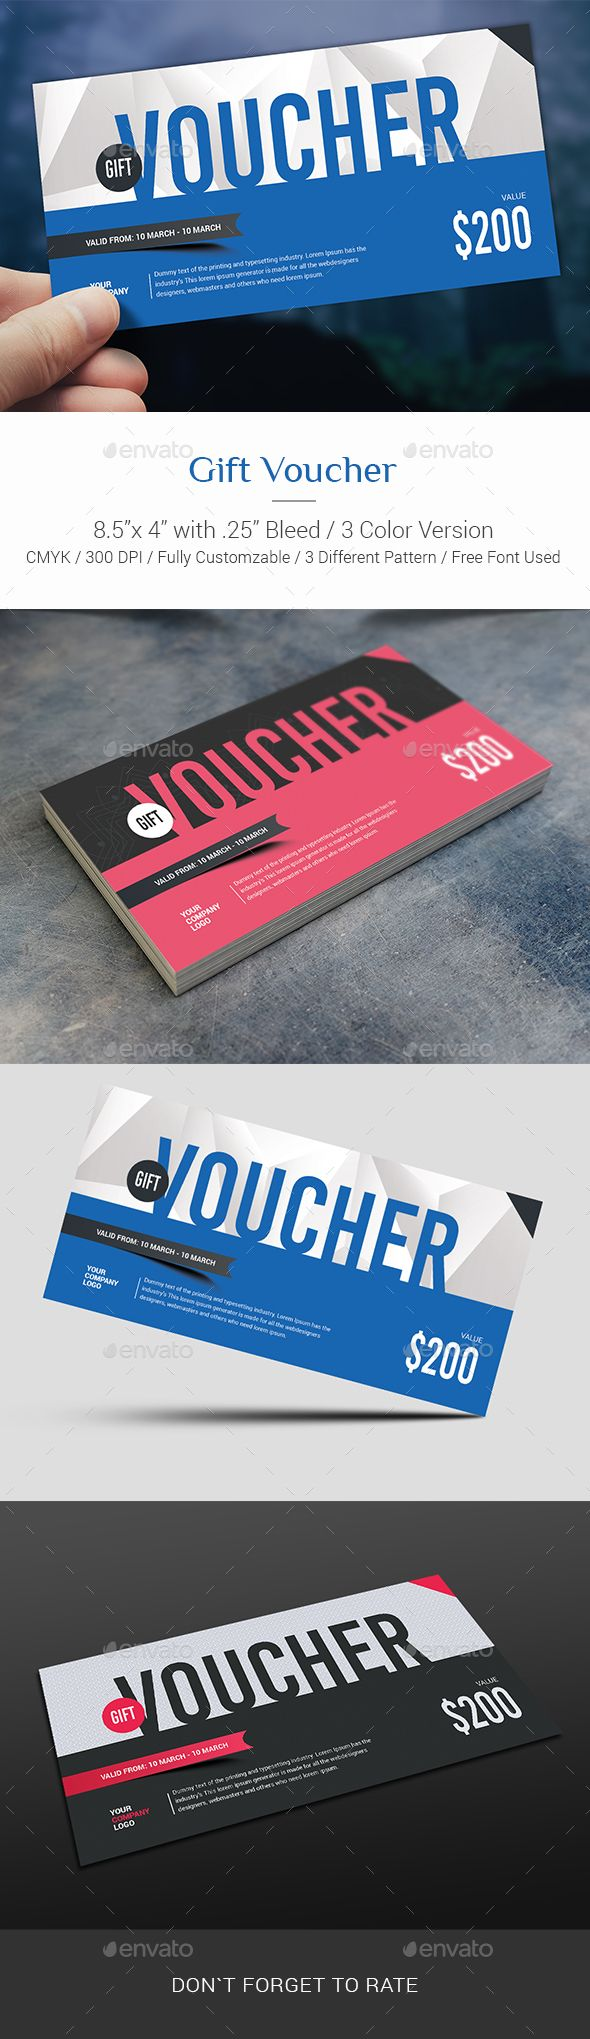 Gift Voucher Template PSD #design Download: http://graphicriver.net/item/gift-voucher/13790894?ref=ksioks